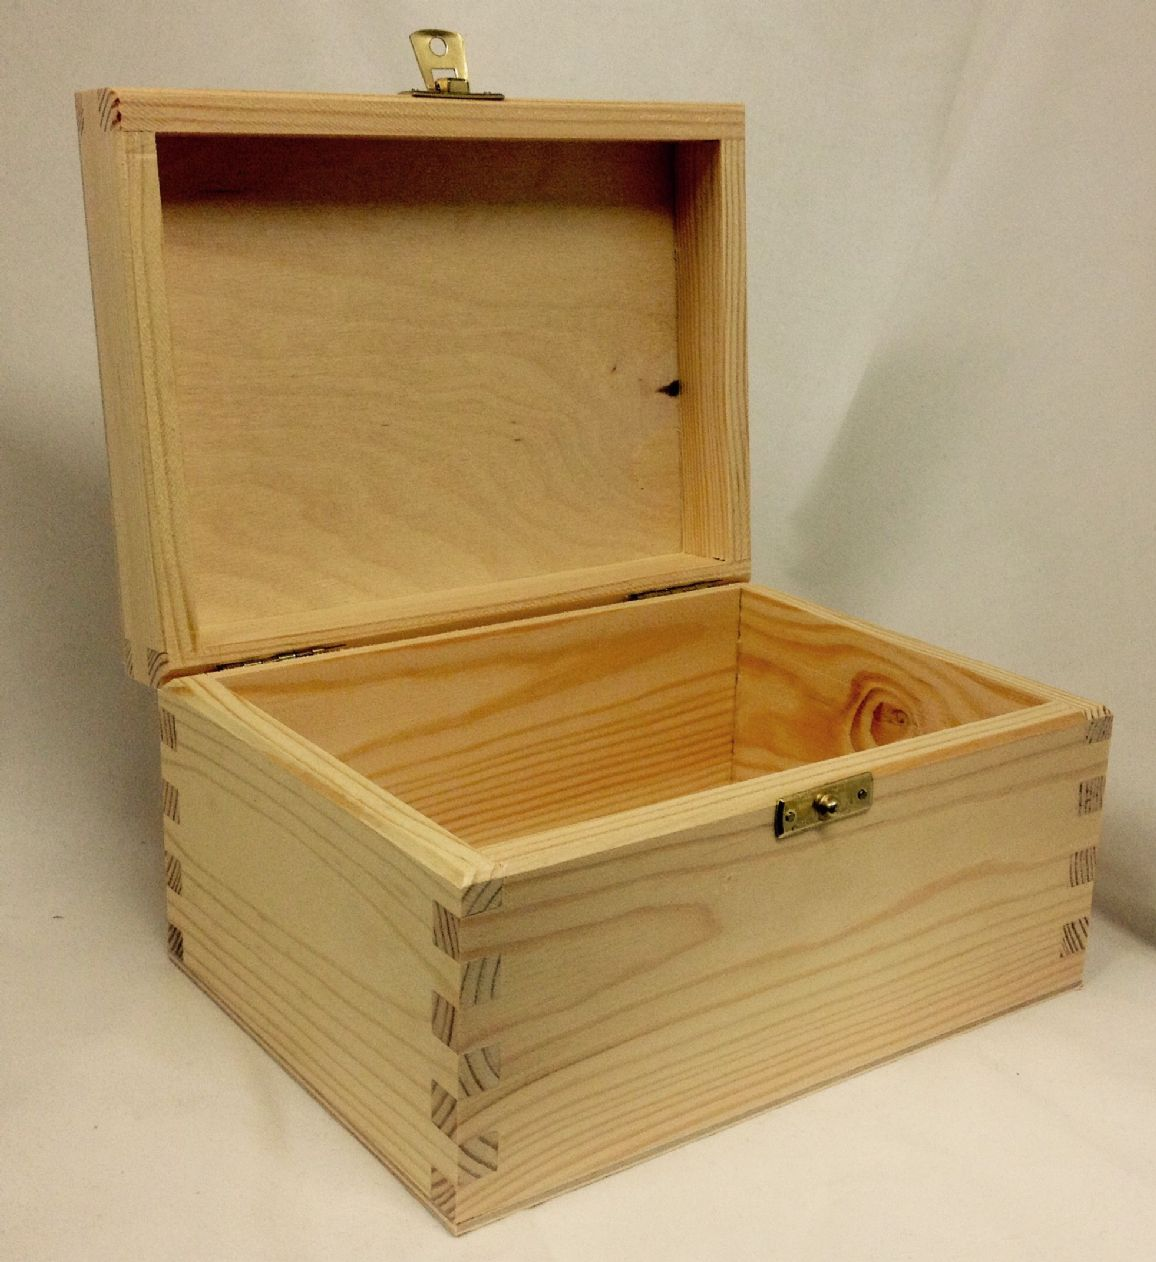 Firewood+Storage+Boxes Pine Wood Storage Box - Large